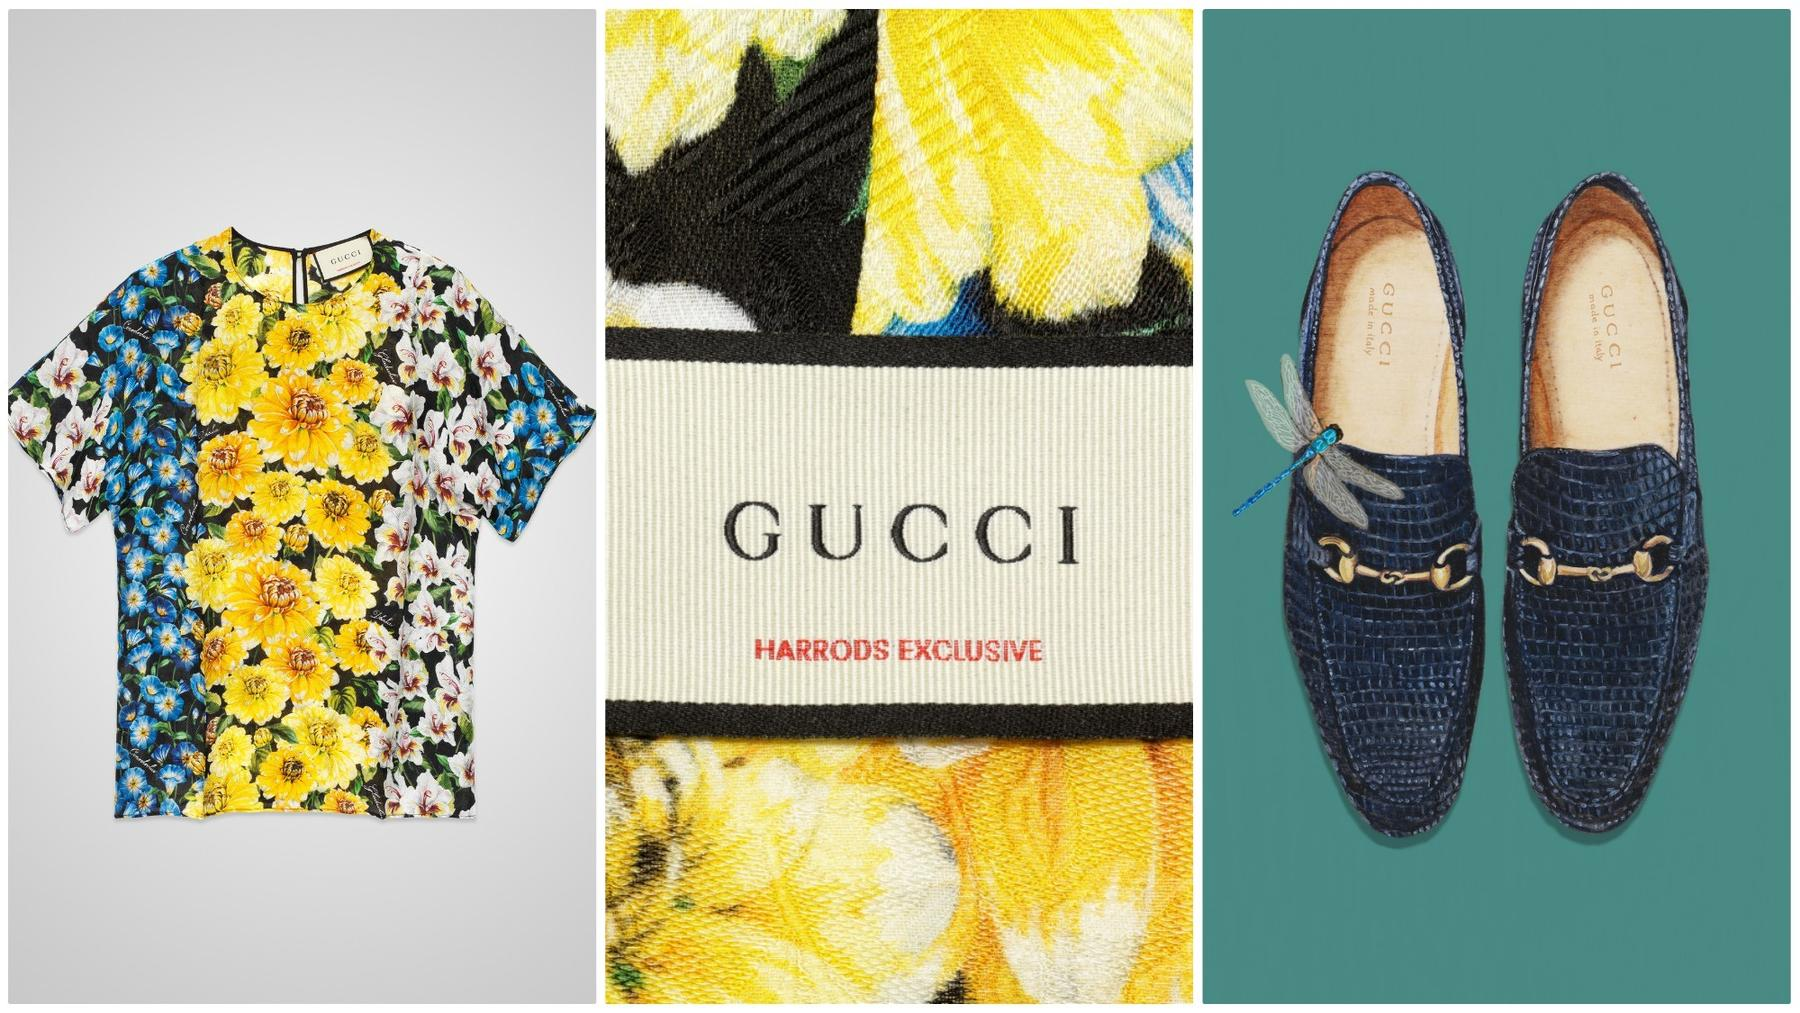 dbaa72d441c Gucci partners with Harrods for a Garden-themed display of exclusive  products -